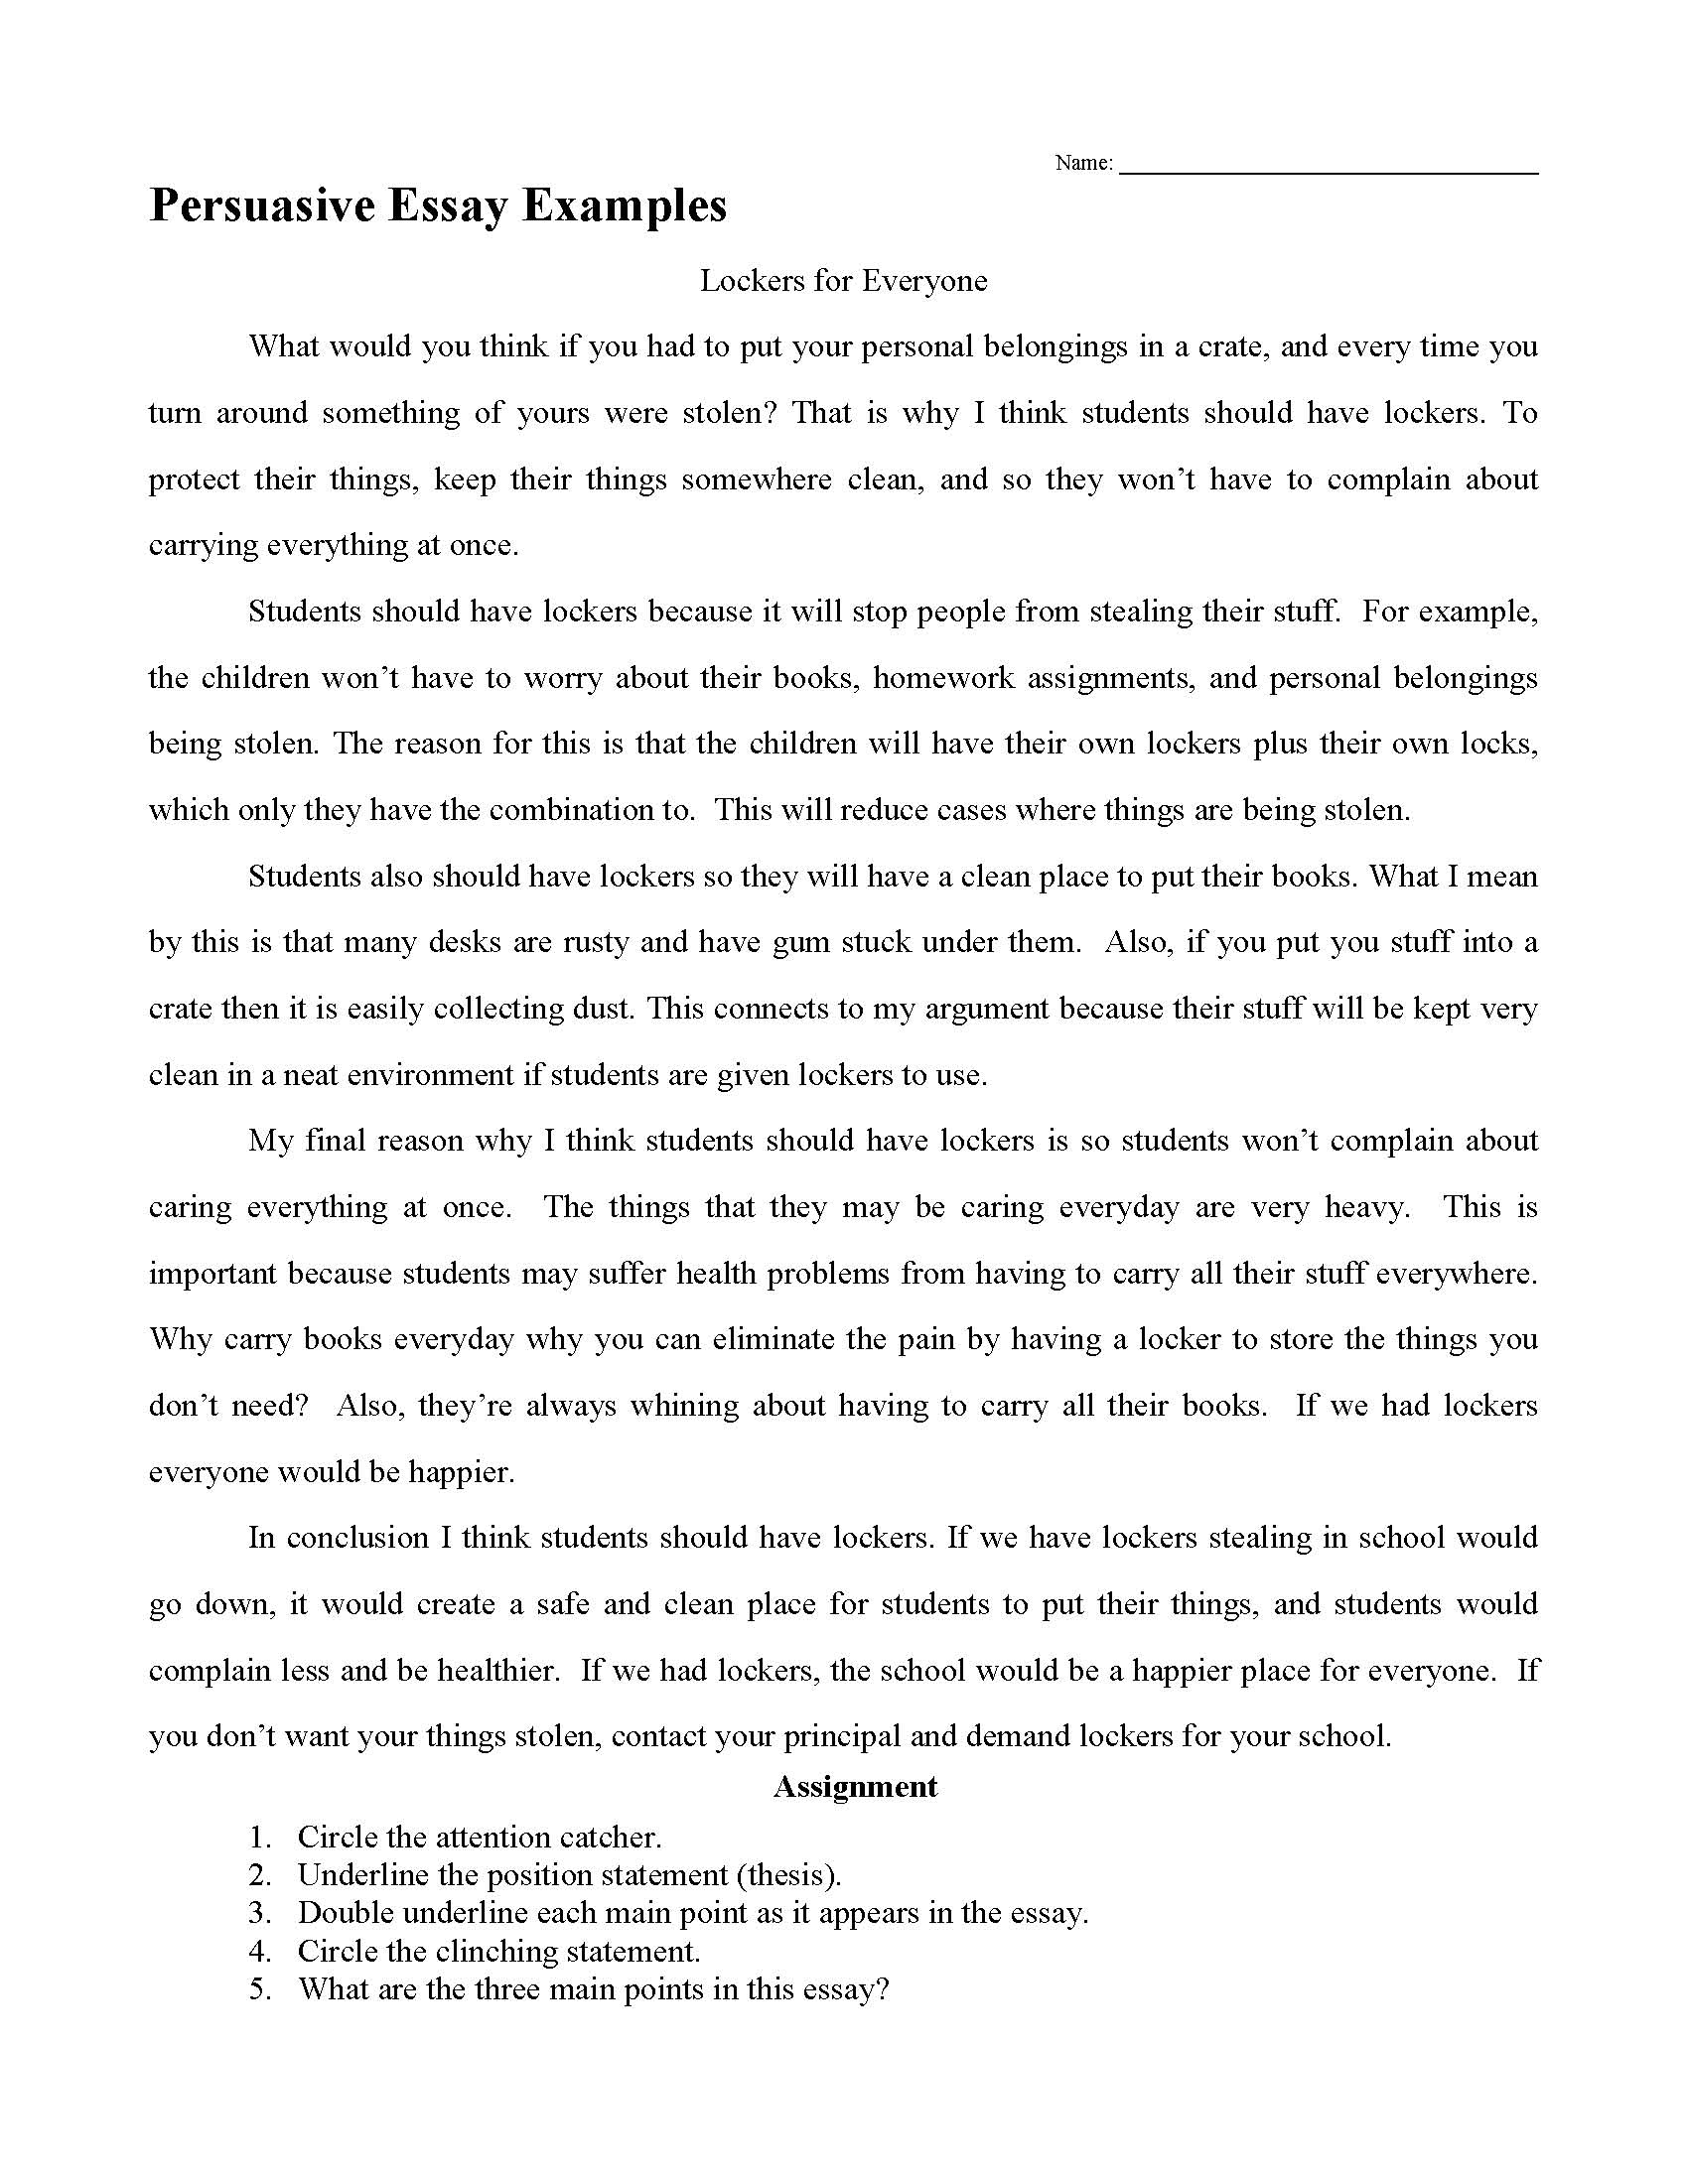 014 Criminal Justice Research Paper Topics Persuasive Essay Examples Fearsome 100 Full